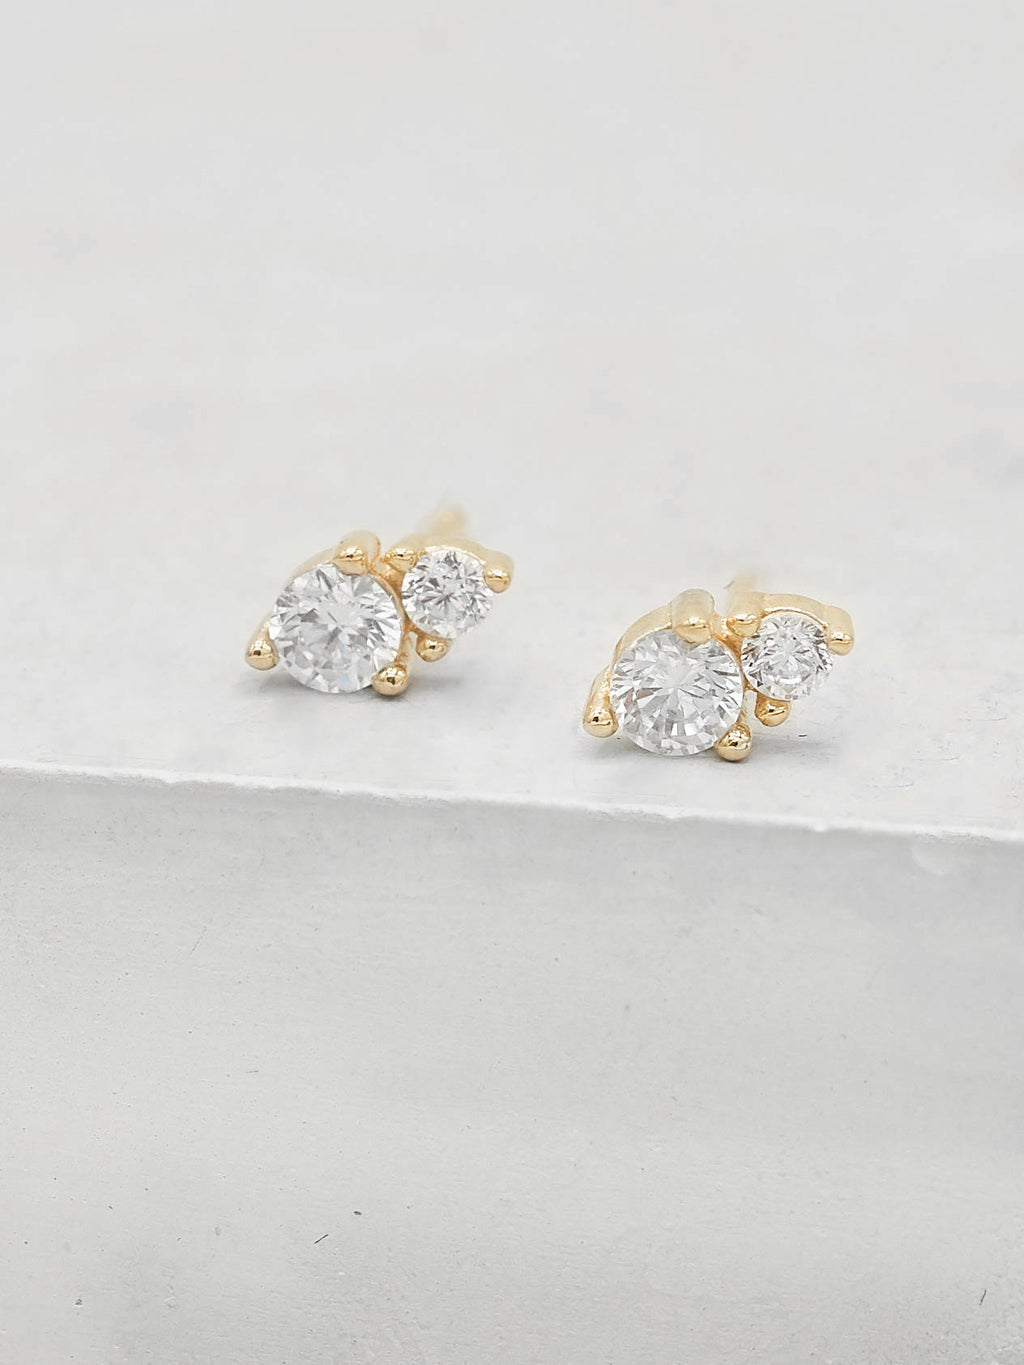 2 stone Round shape CZ Stud Earrings by The Faint Hearted Jewelry